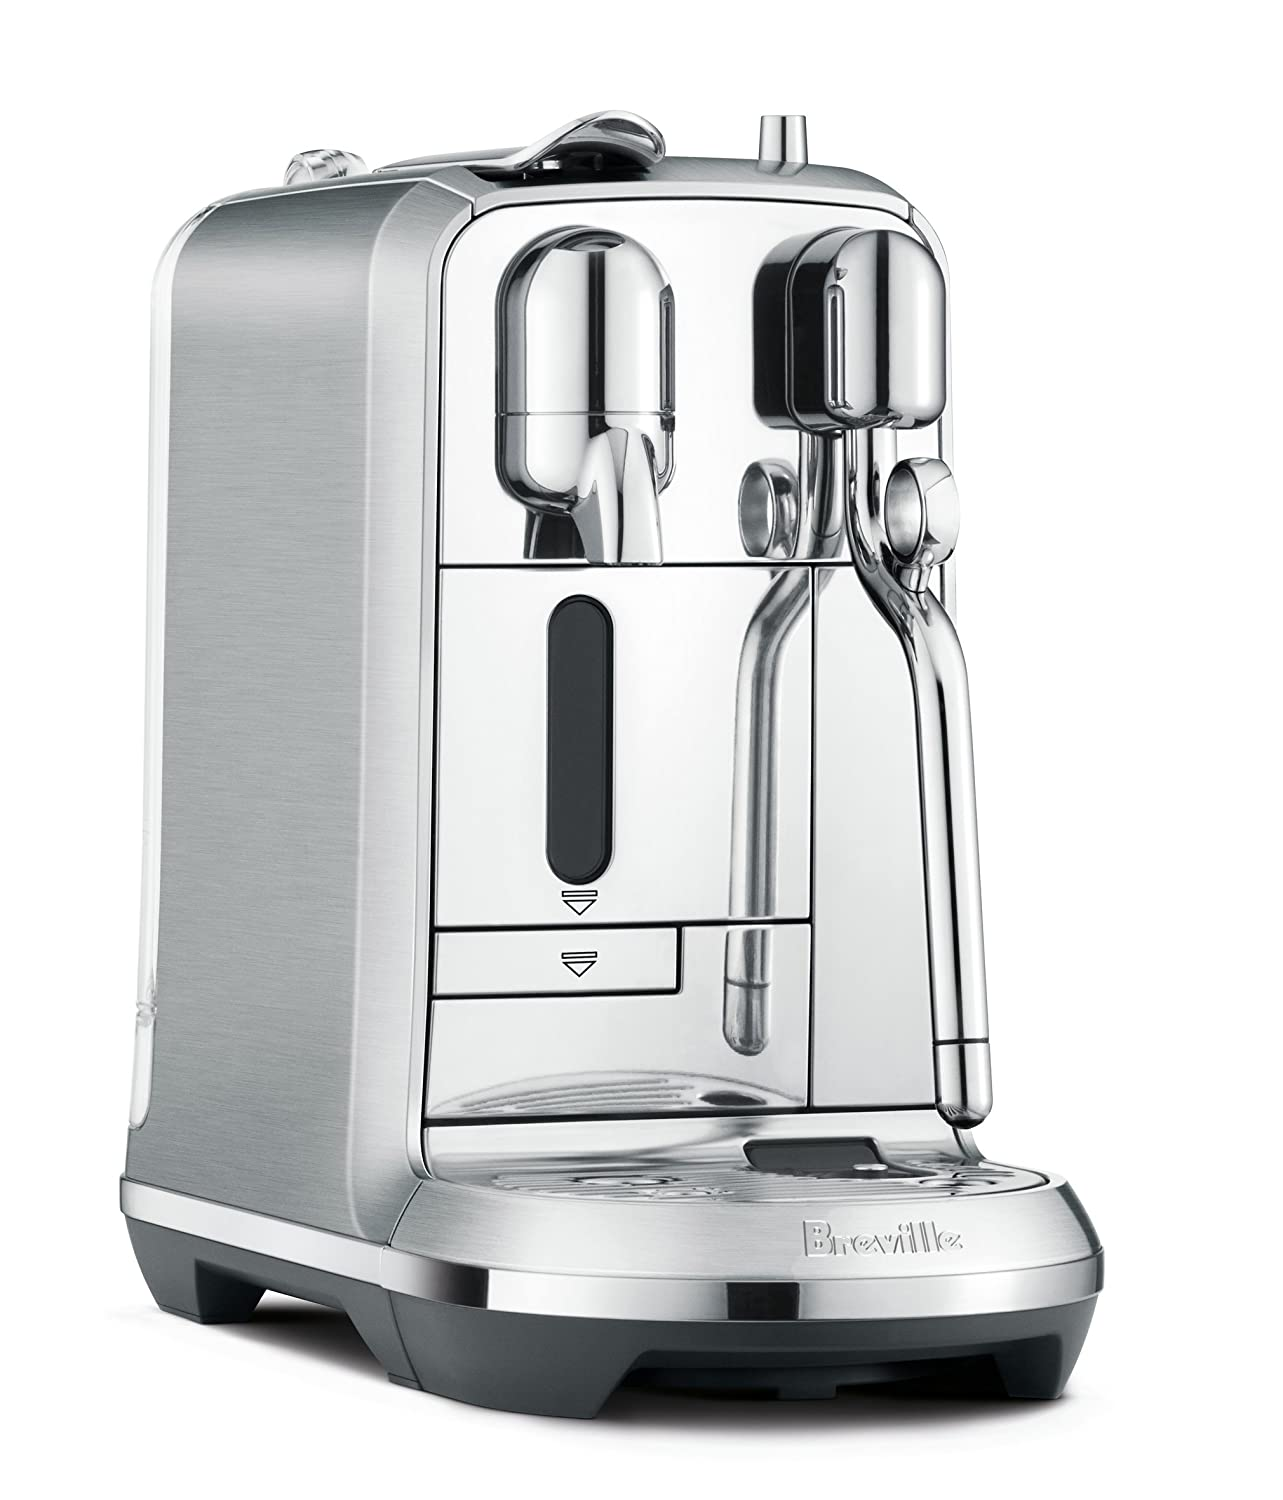 Nespresso Creatista Plus Espresso and Coffee Beverages Maker with Milk Frother by Breville, Silver BNE800BSS